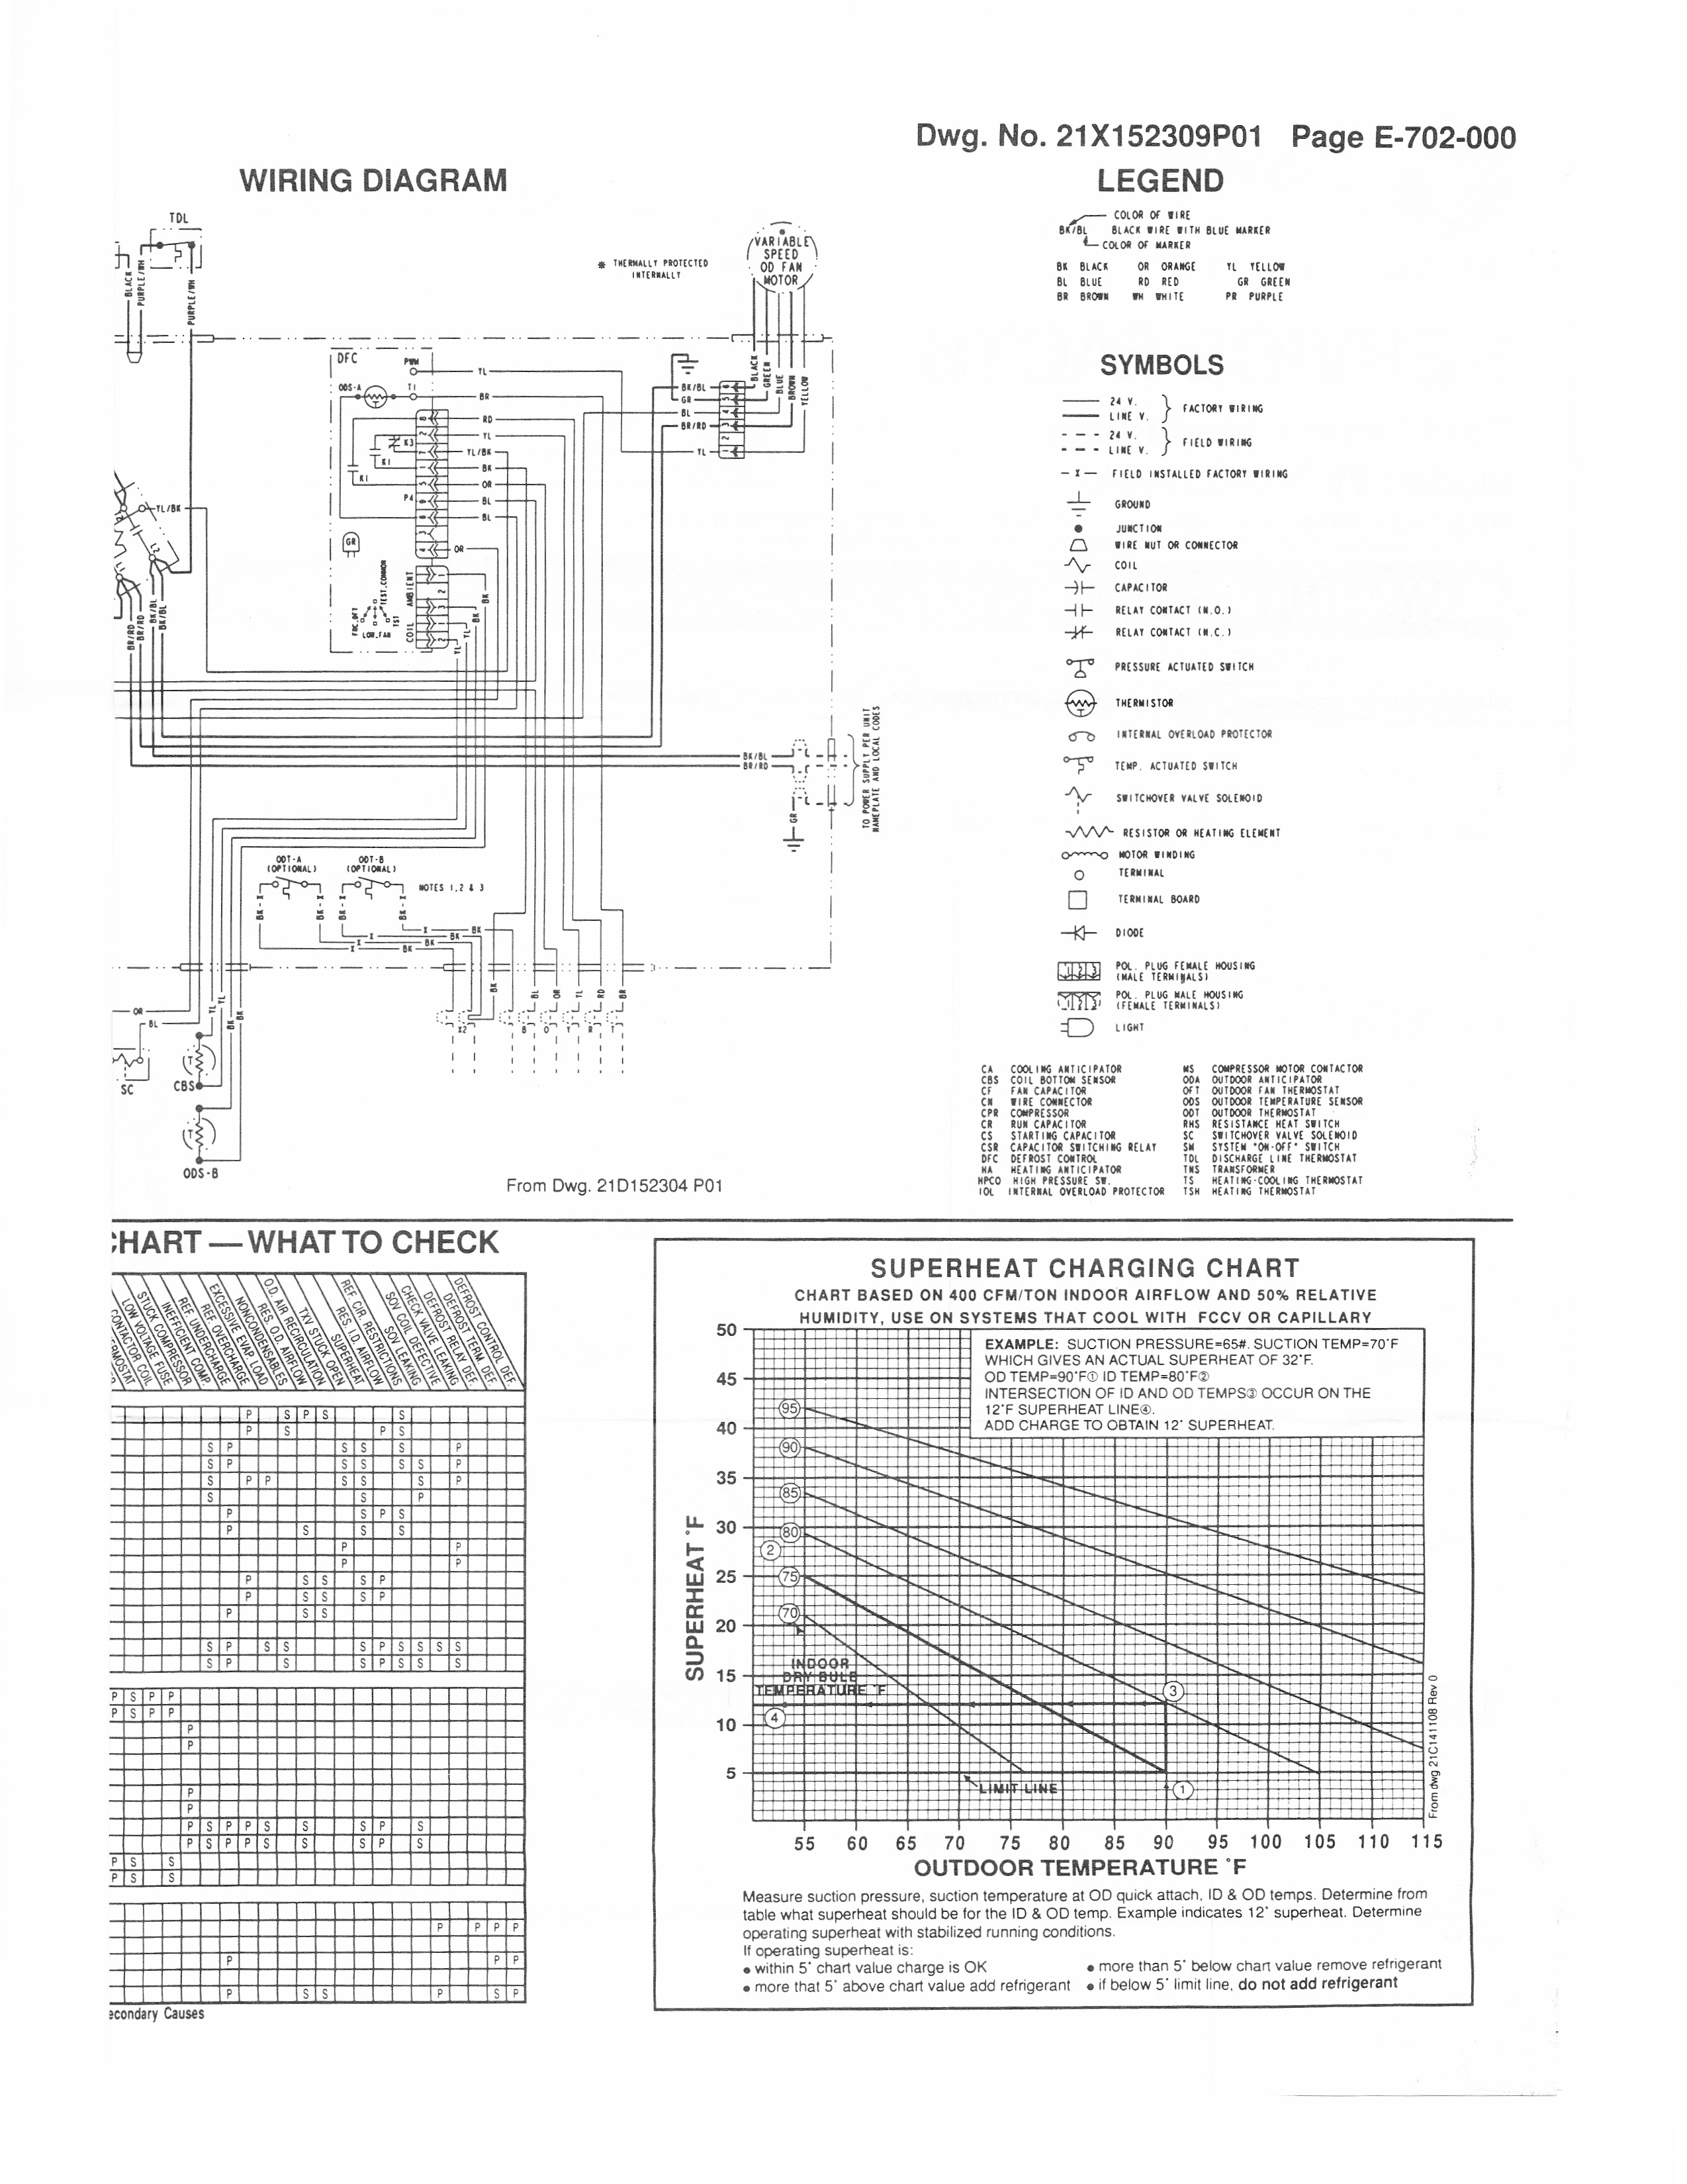 trane thermostat wiring diagram Collection-Trane thermostat Wiring Diagram Fresh I Have A Trane Xl1400 Heat Pump Model Twy042b100a1 and the 14-k